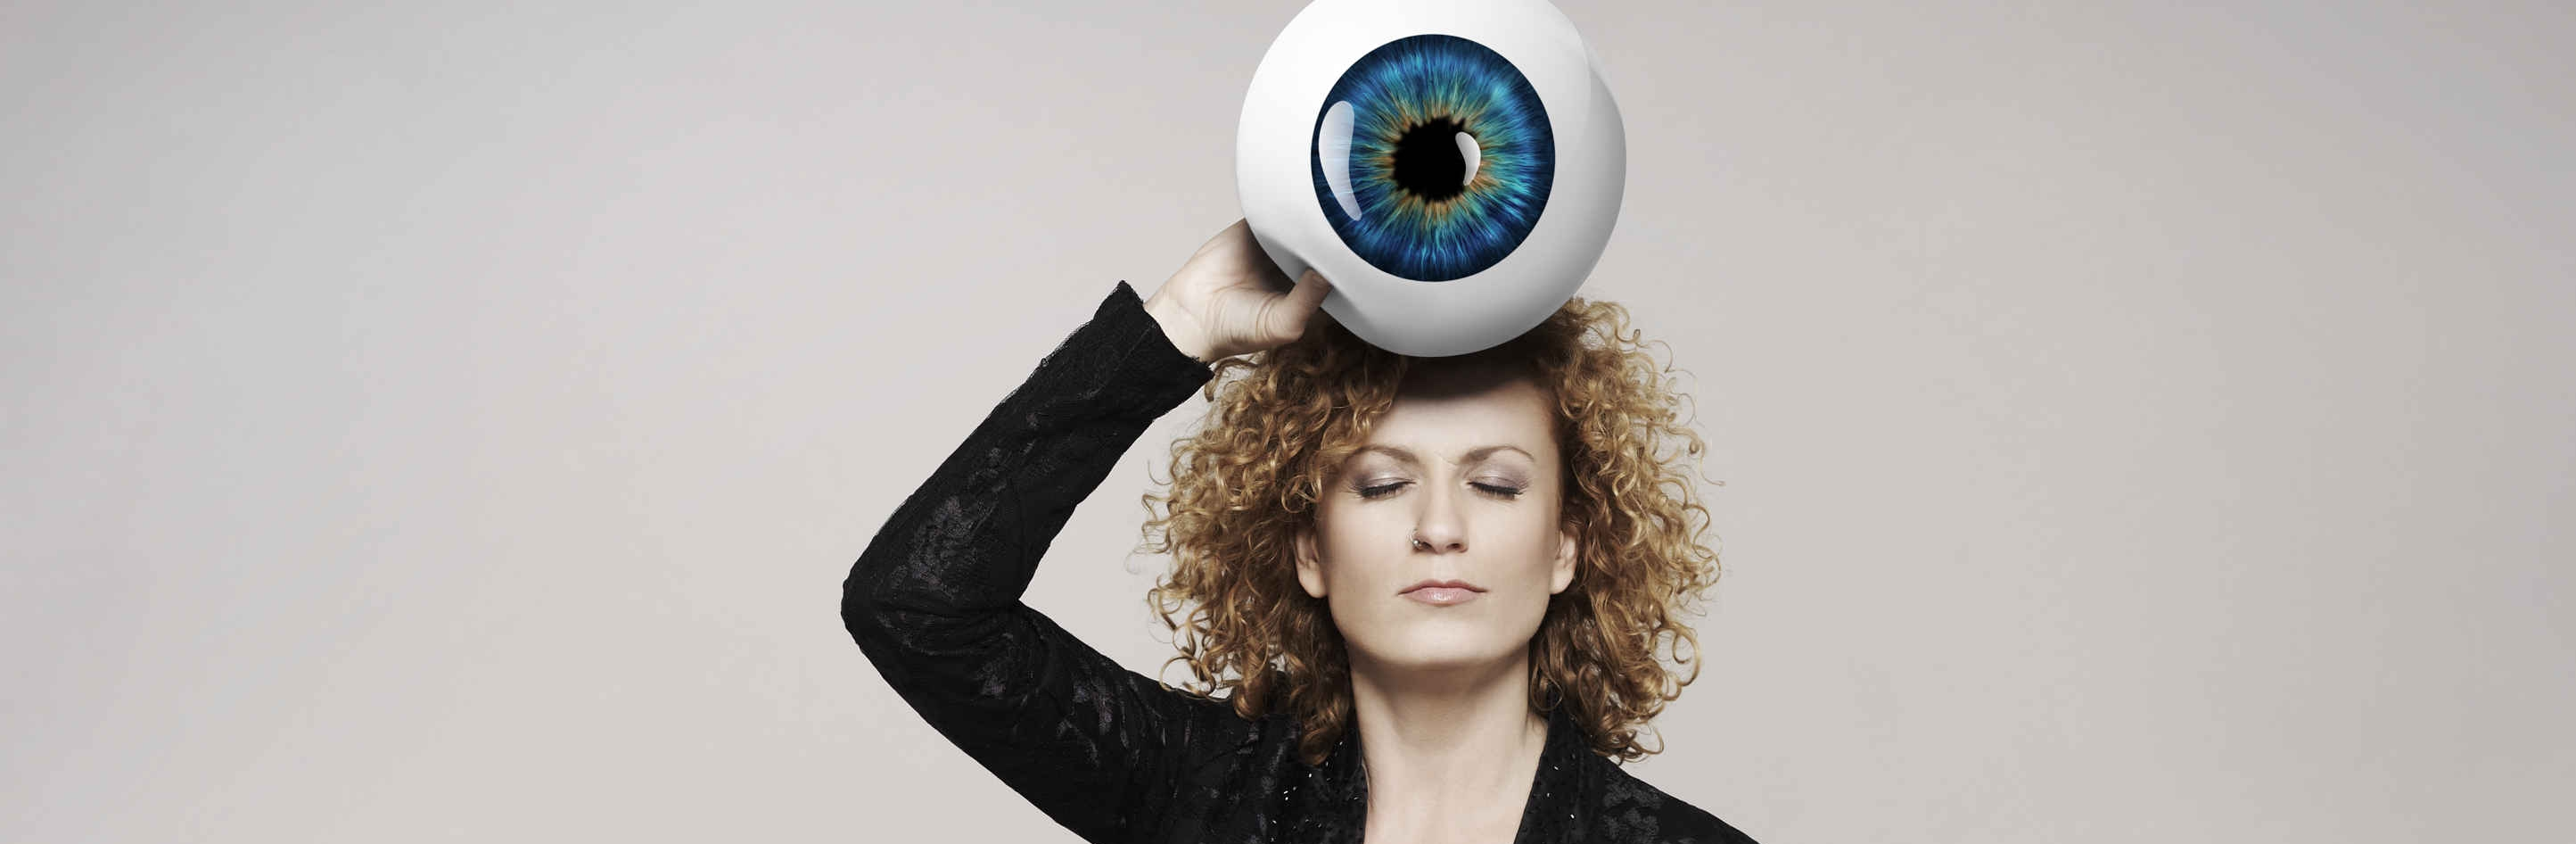 Lucy Diakovska Promi Big Brother 2013 Auge